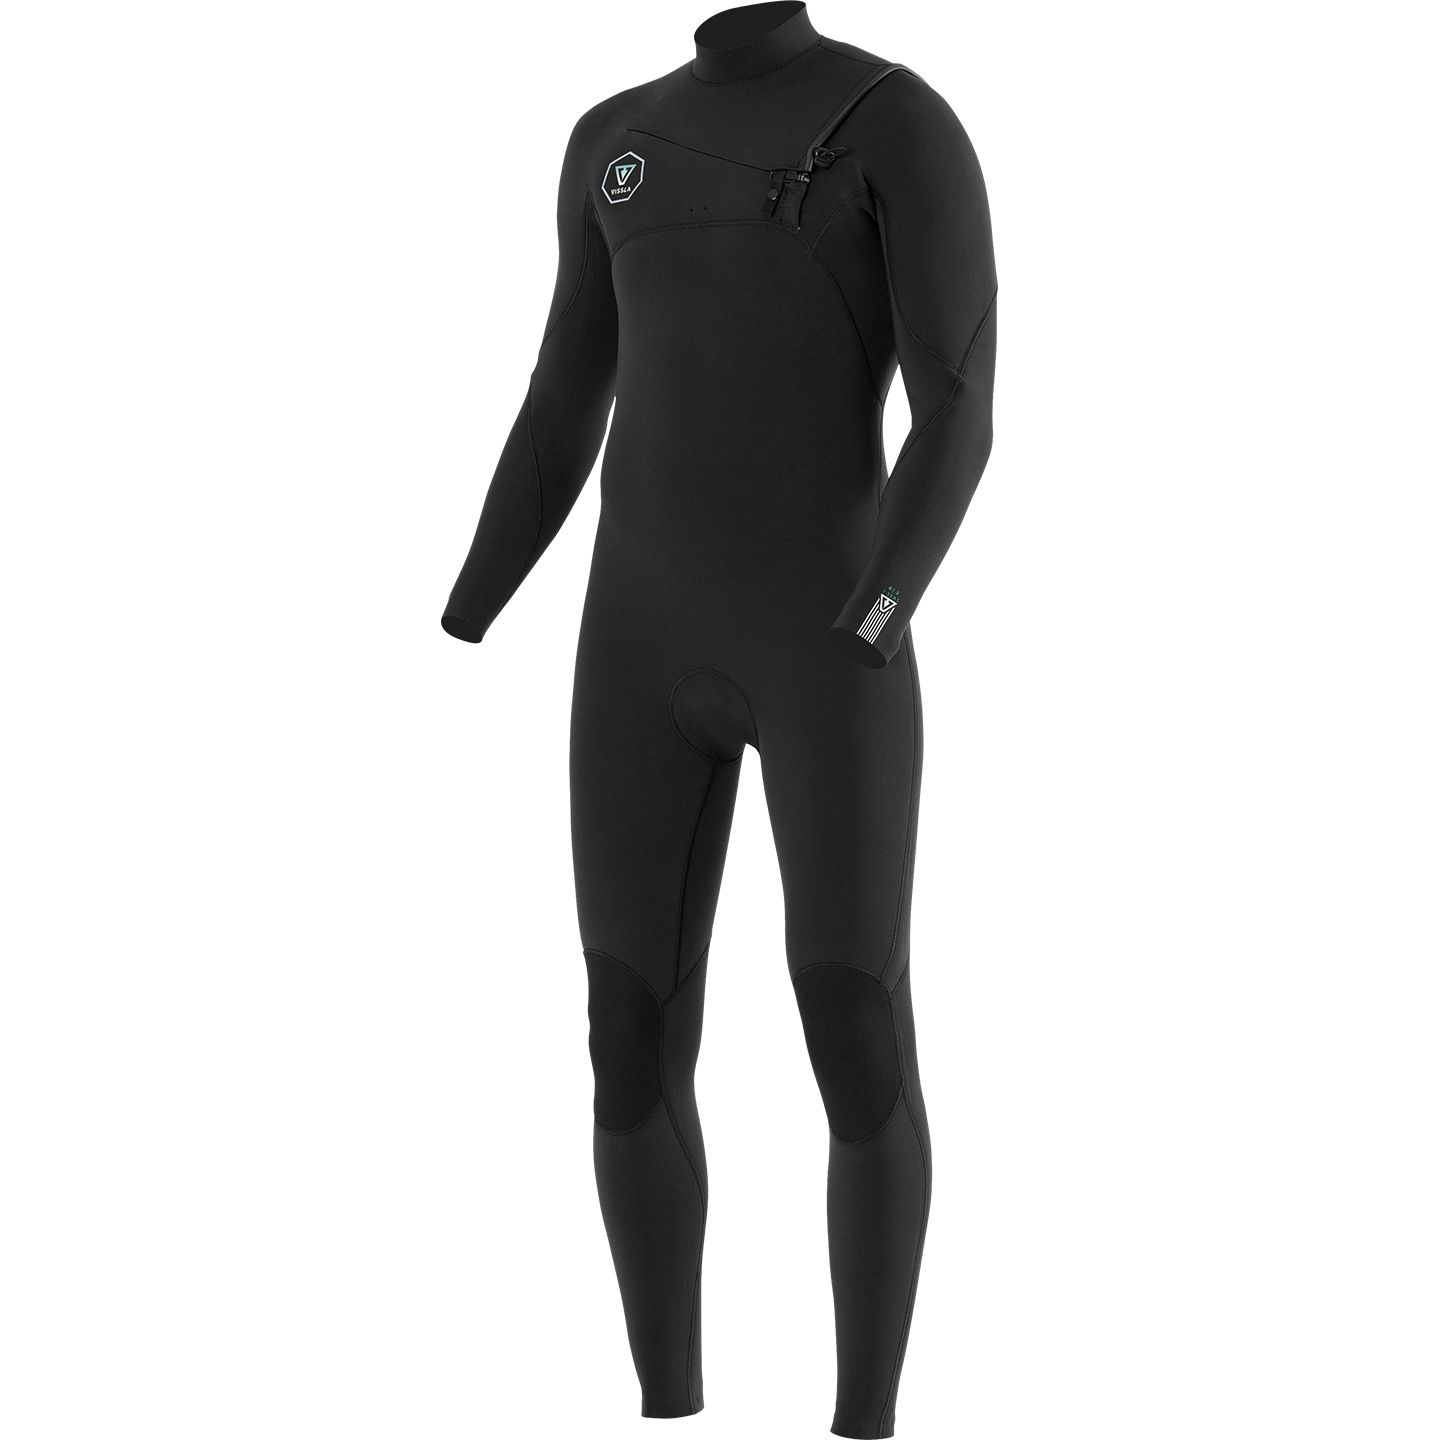 Long John Vissla Seven Seas 2.2mm Chest Zip